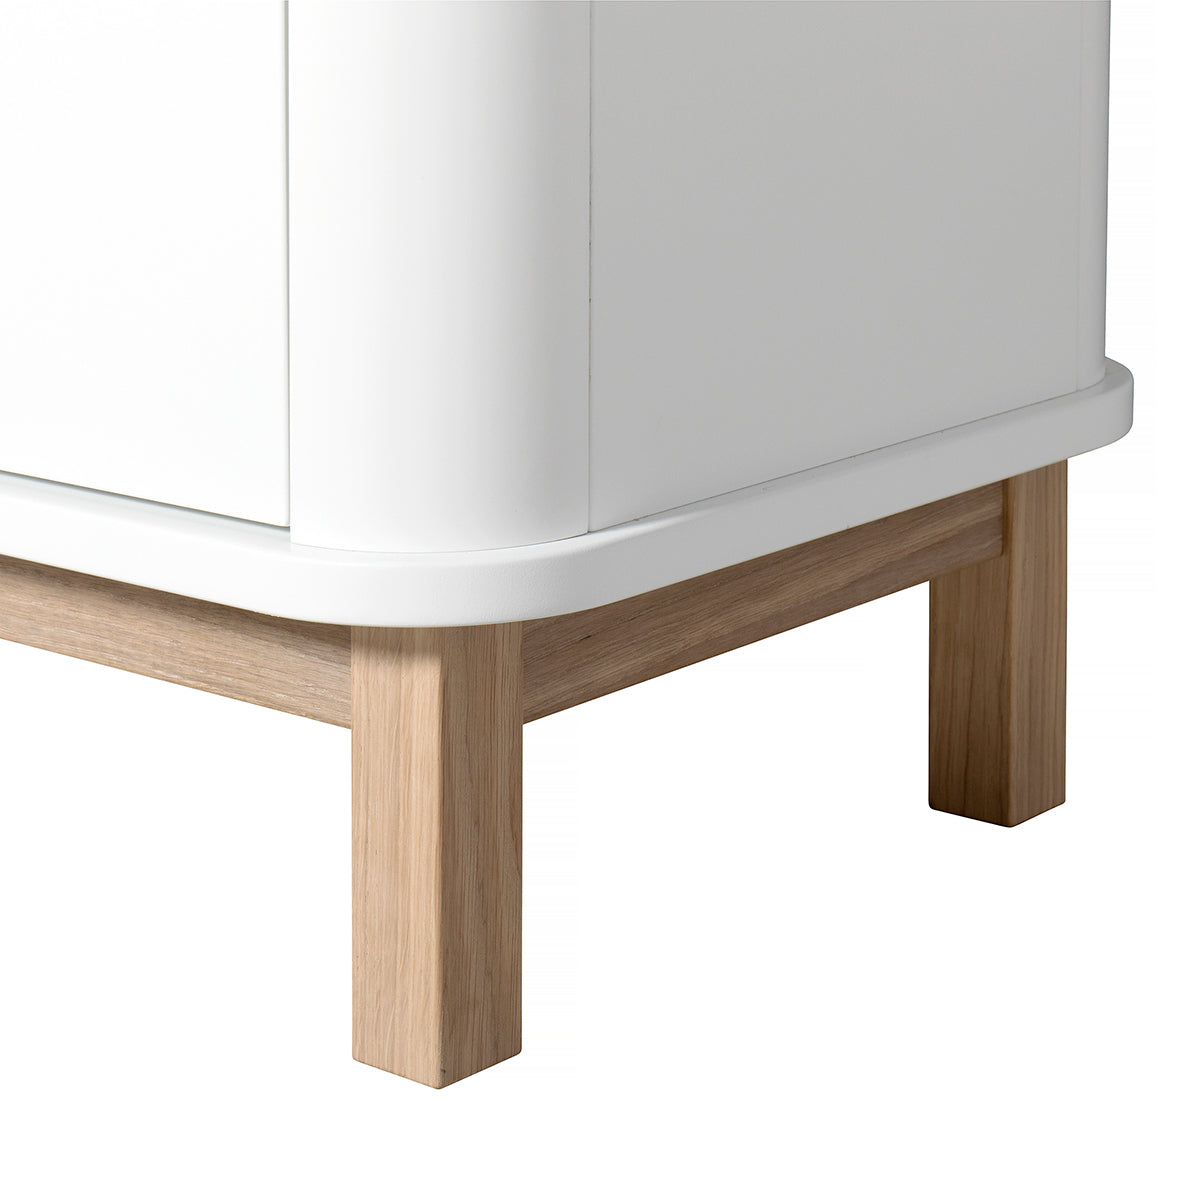 Oliver Furniture Multischrank Wood Collection, 3-türig, weiss/Eiche